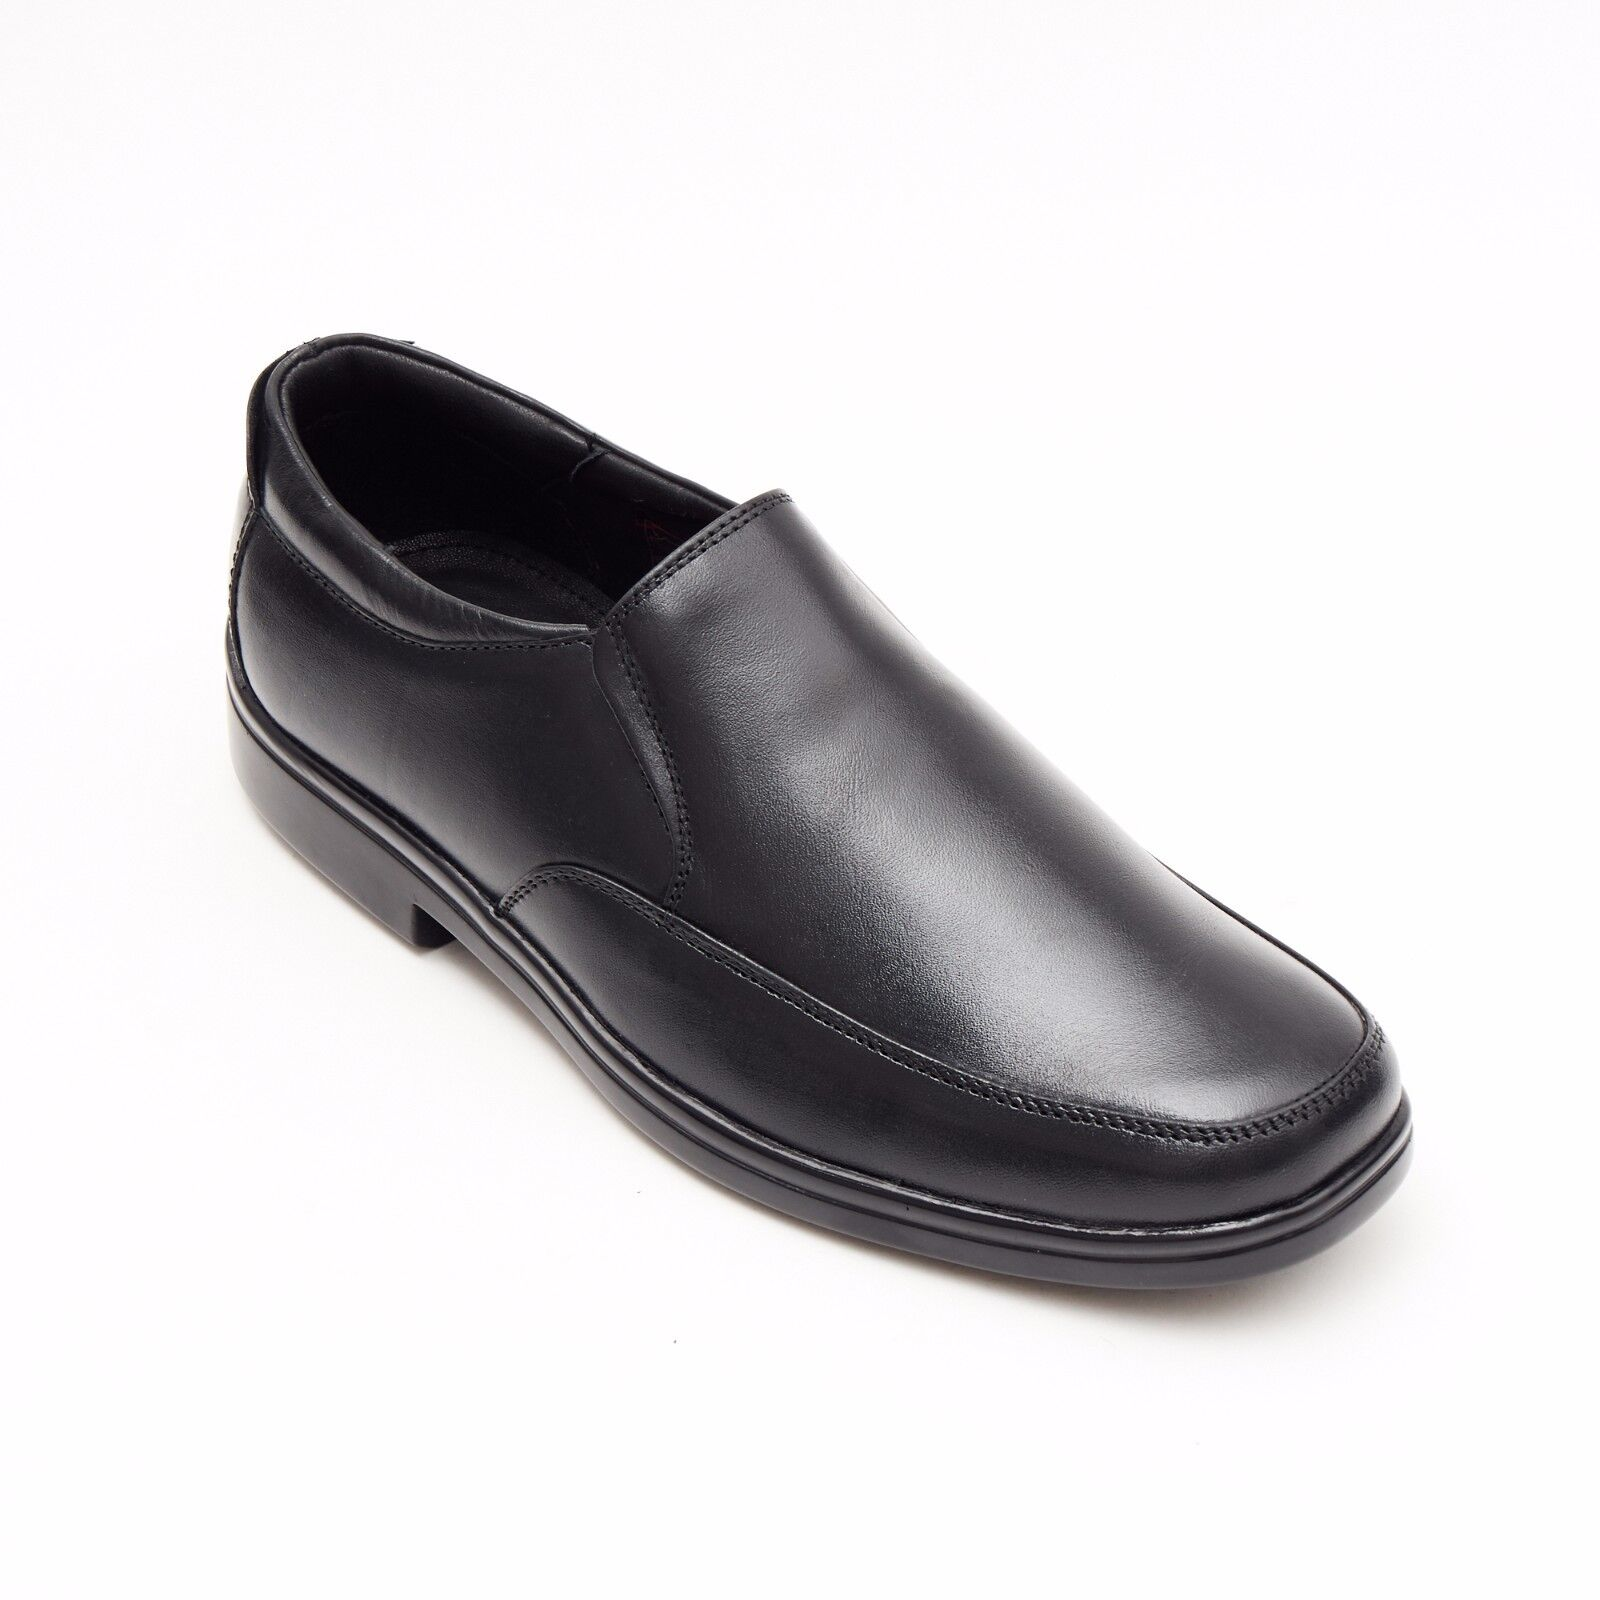 Mens Real Smart Leather Casual Formal Office Smart Real Work Slip On Shoes Size 38ba66